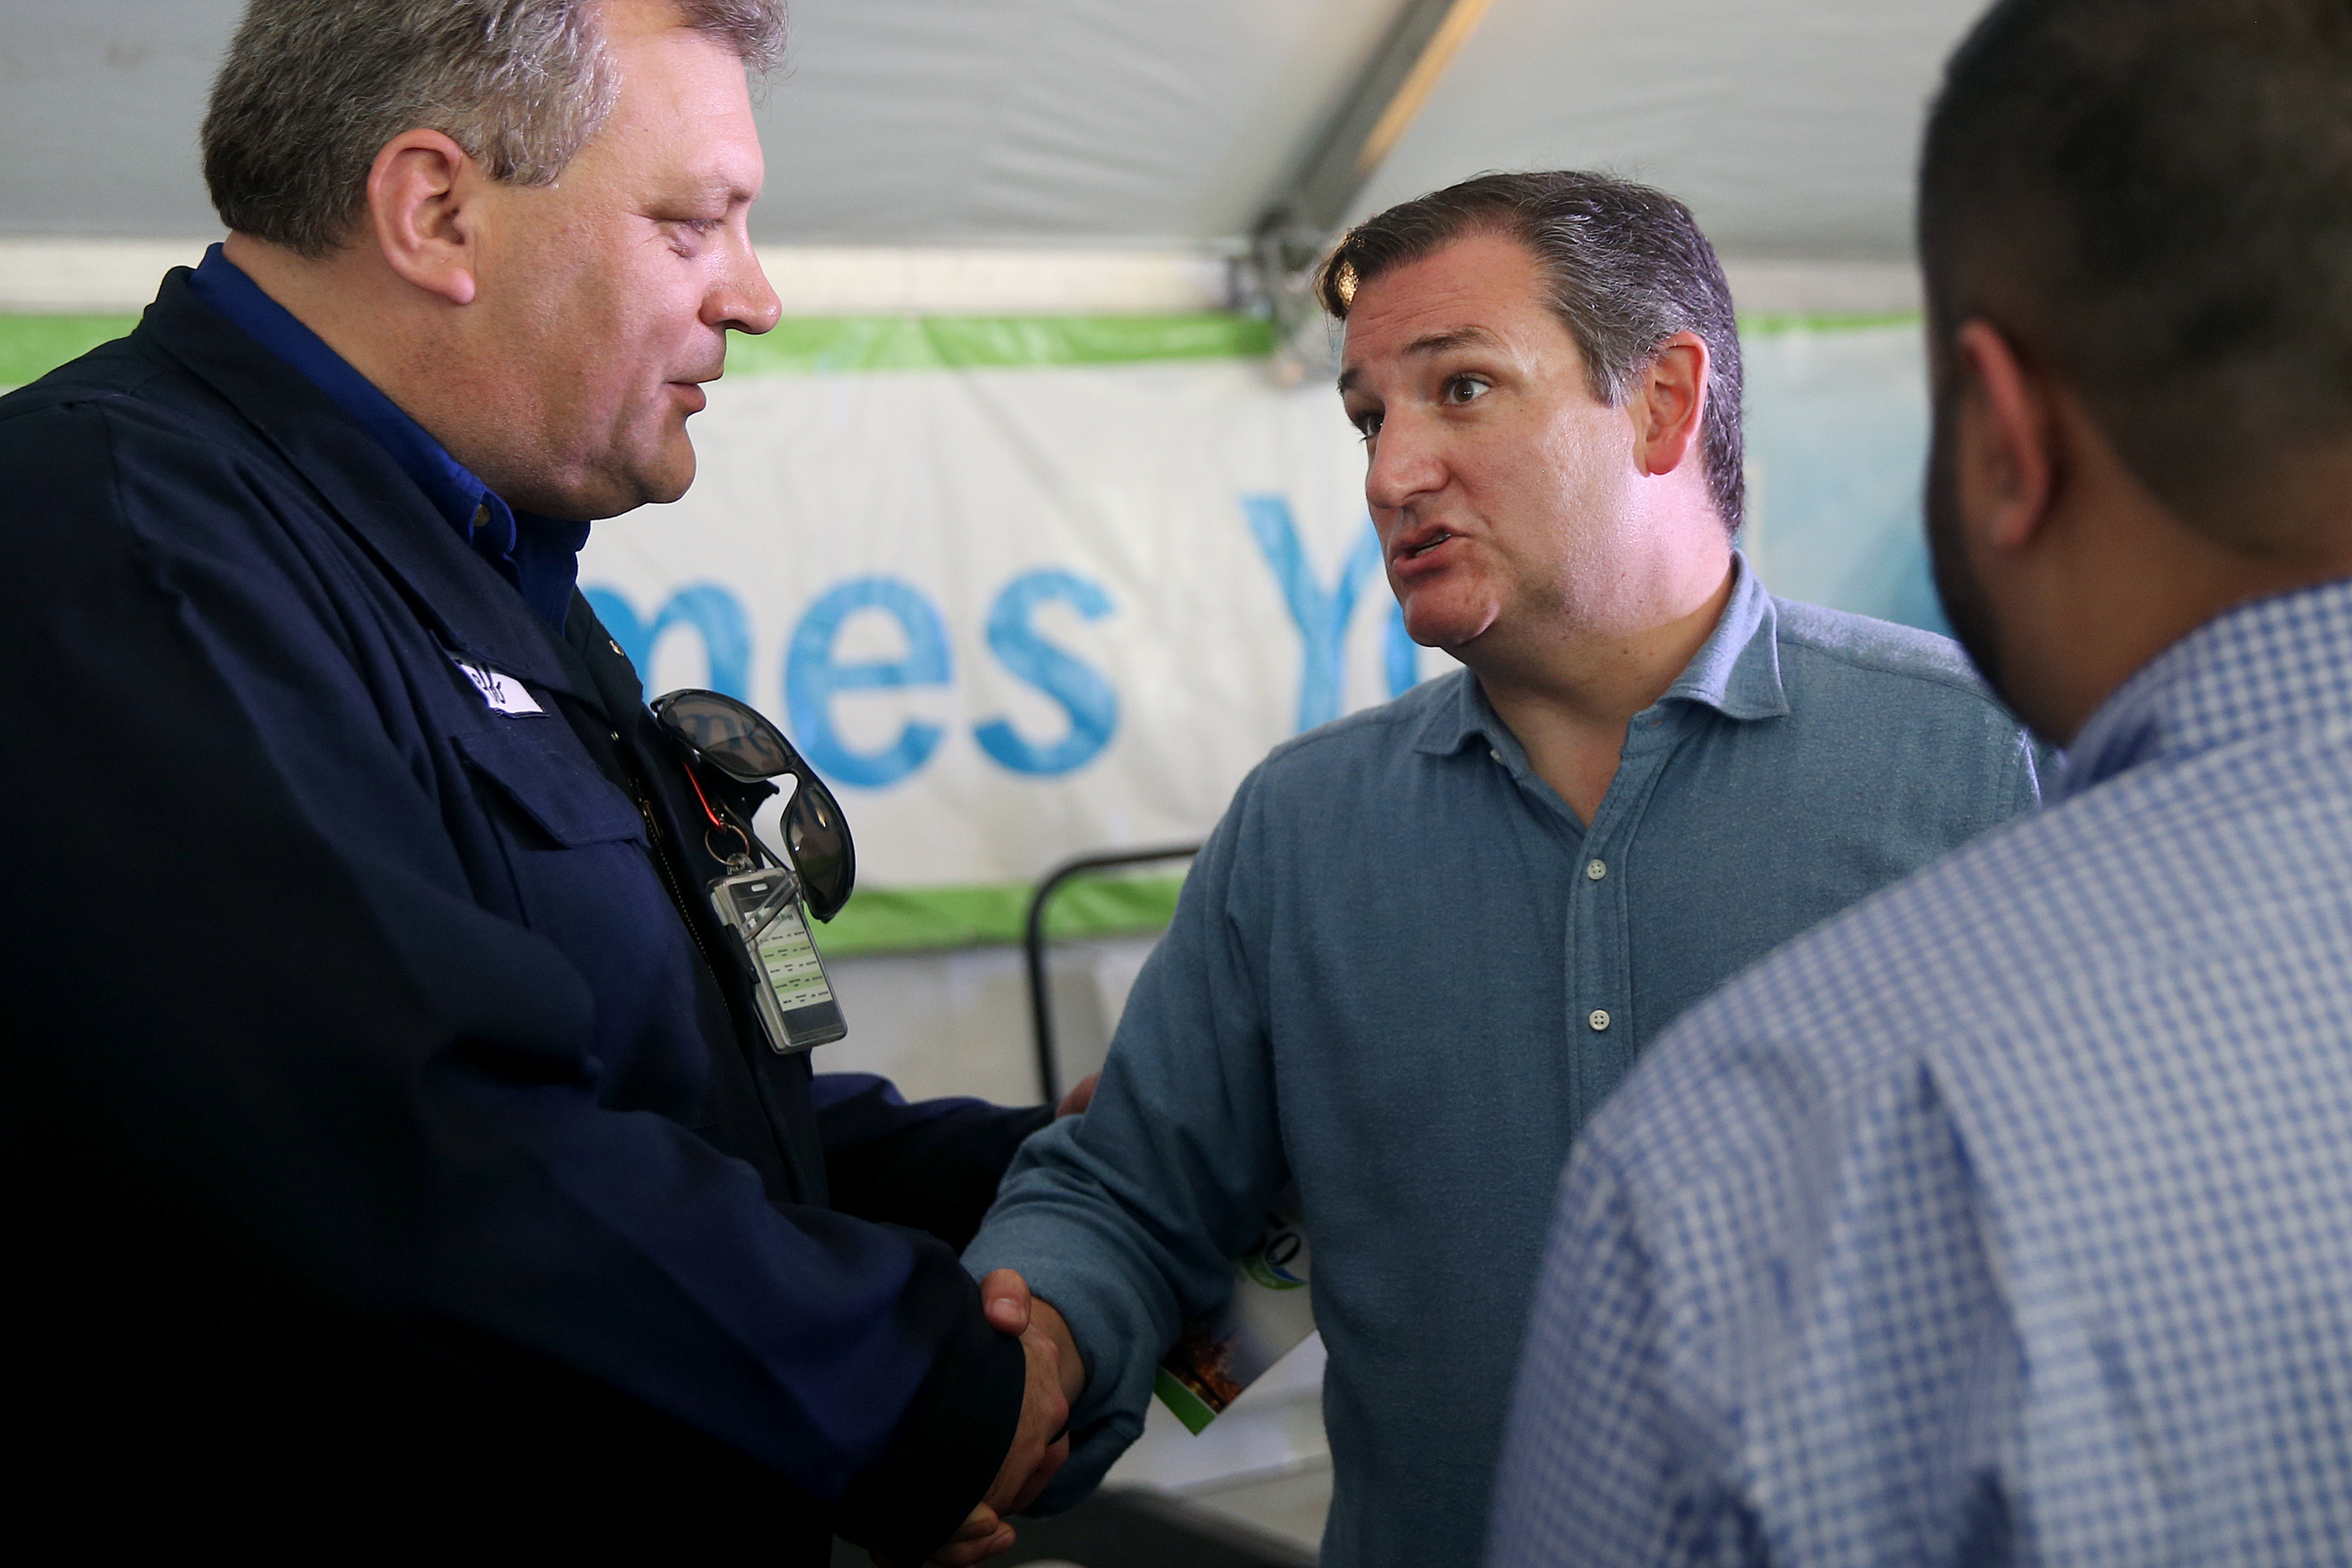 U.S. Sen. Ted Cruz (R-Texas), right, shakes hands with Monroe Energy President and CEO Jeff Warmann after a rally against the federal renewable fuel standard program at the Philadelphia Energy Solutions refinery on Wednesday, Feb. 21, 2018. PES, which filed for bankruptcy in January, blames its financial situation on the rising price for renewable energy credits mandated by the renewable fuel standard program. TIM TAI / Staff Photographer